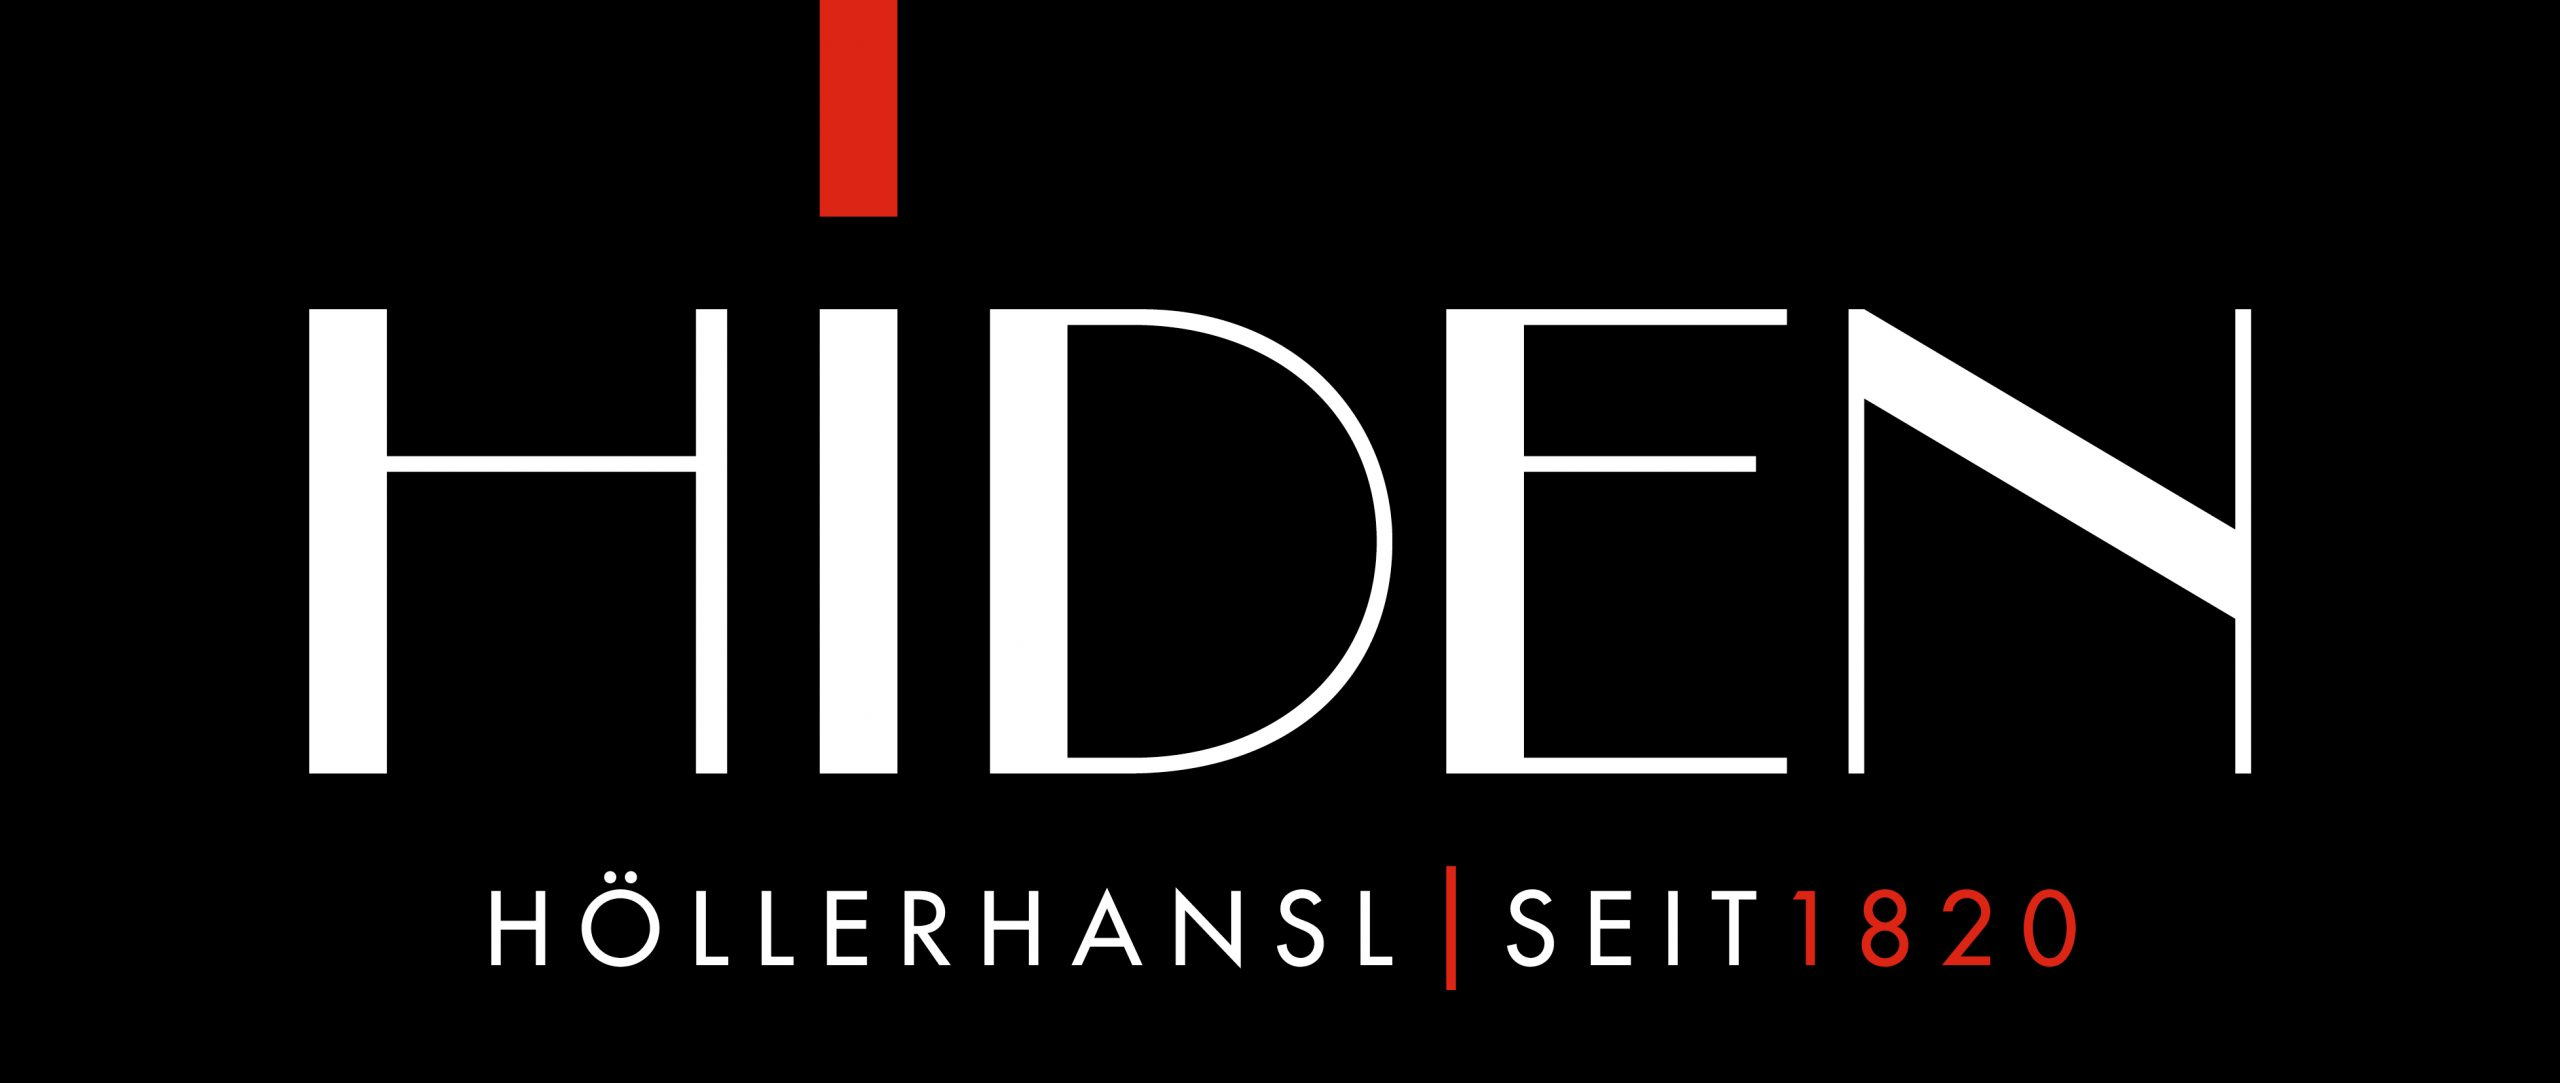 weingut hiden amazing black logotype with name of the winery